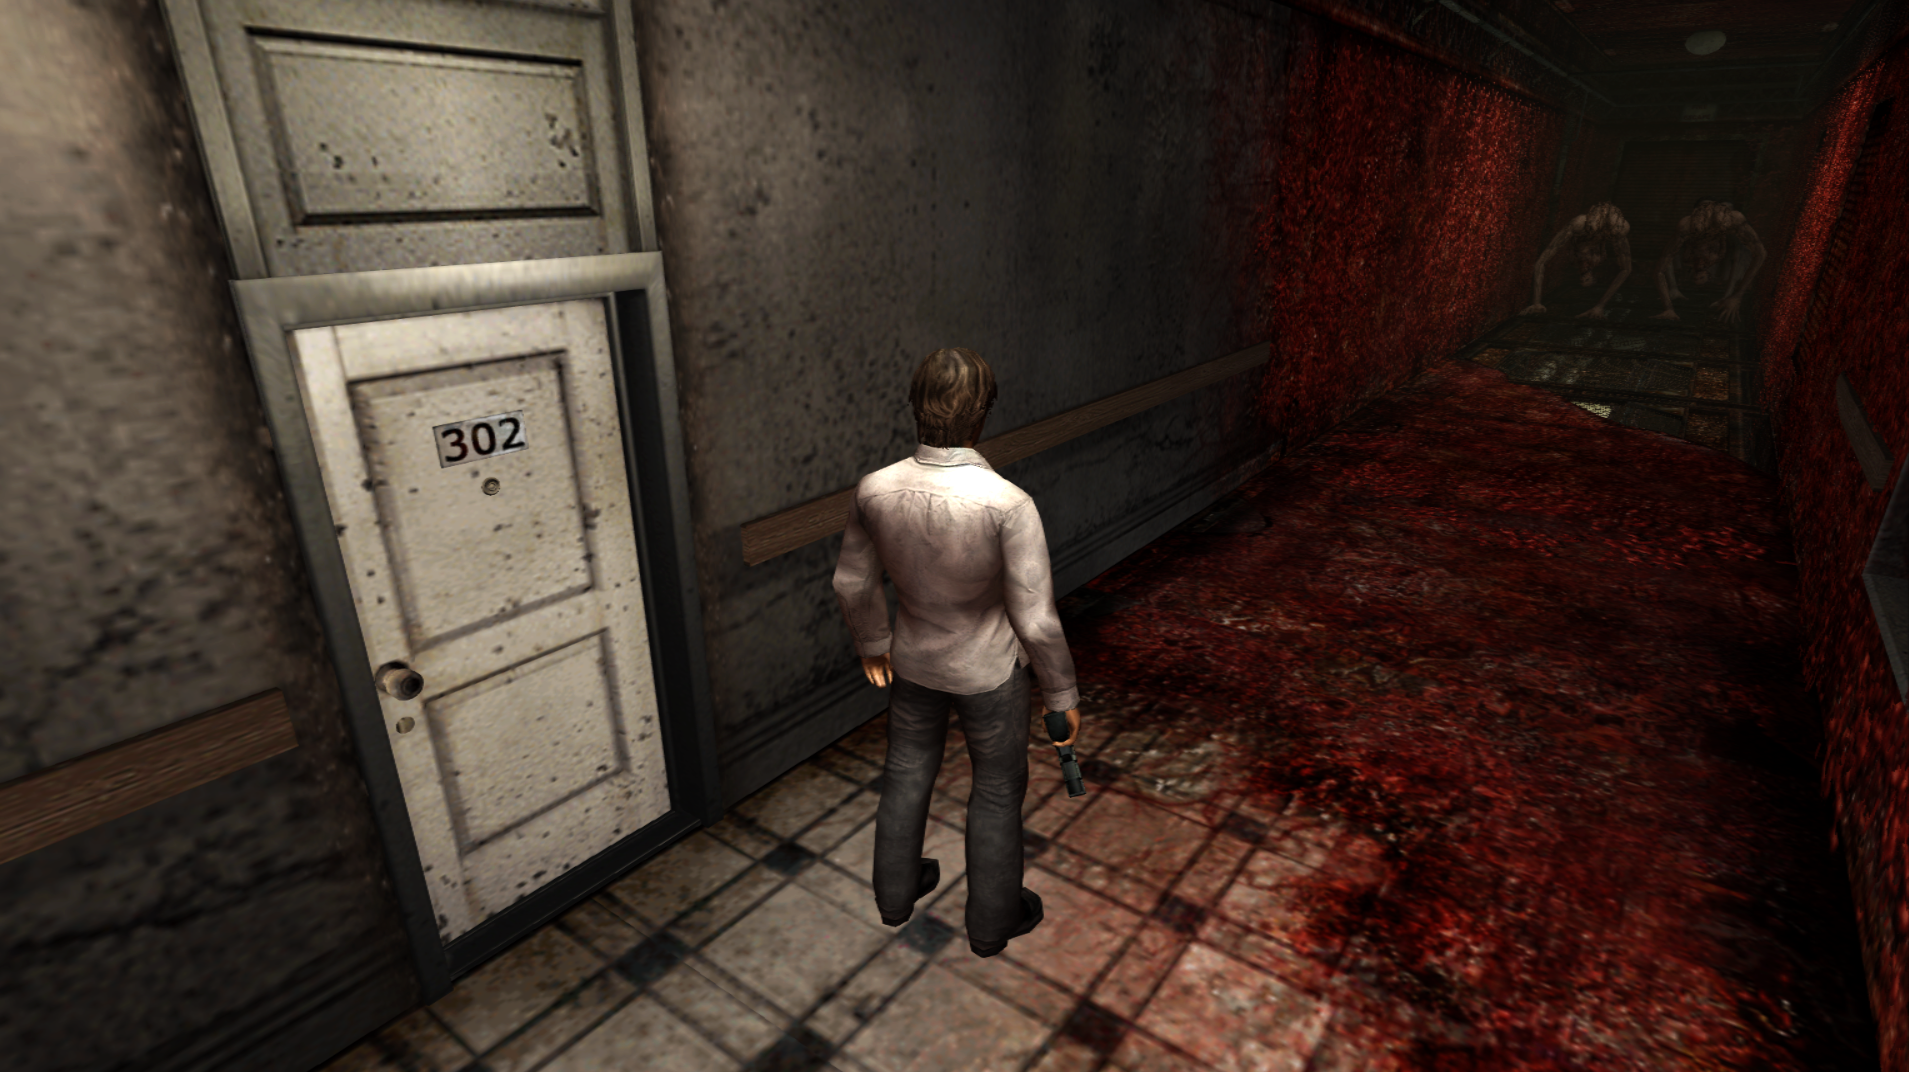 6 Jul 2007 Let's Play Silent Hill 4 by From Earth. on Steam for Window